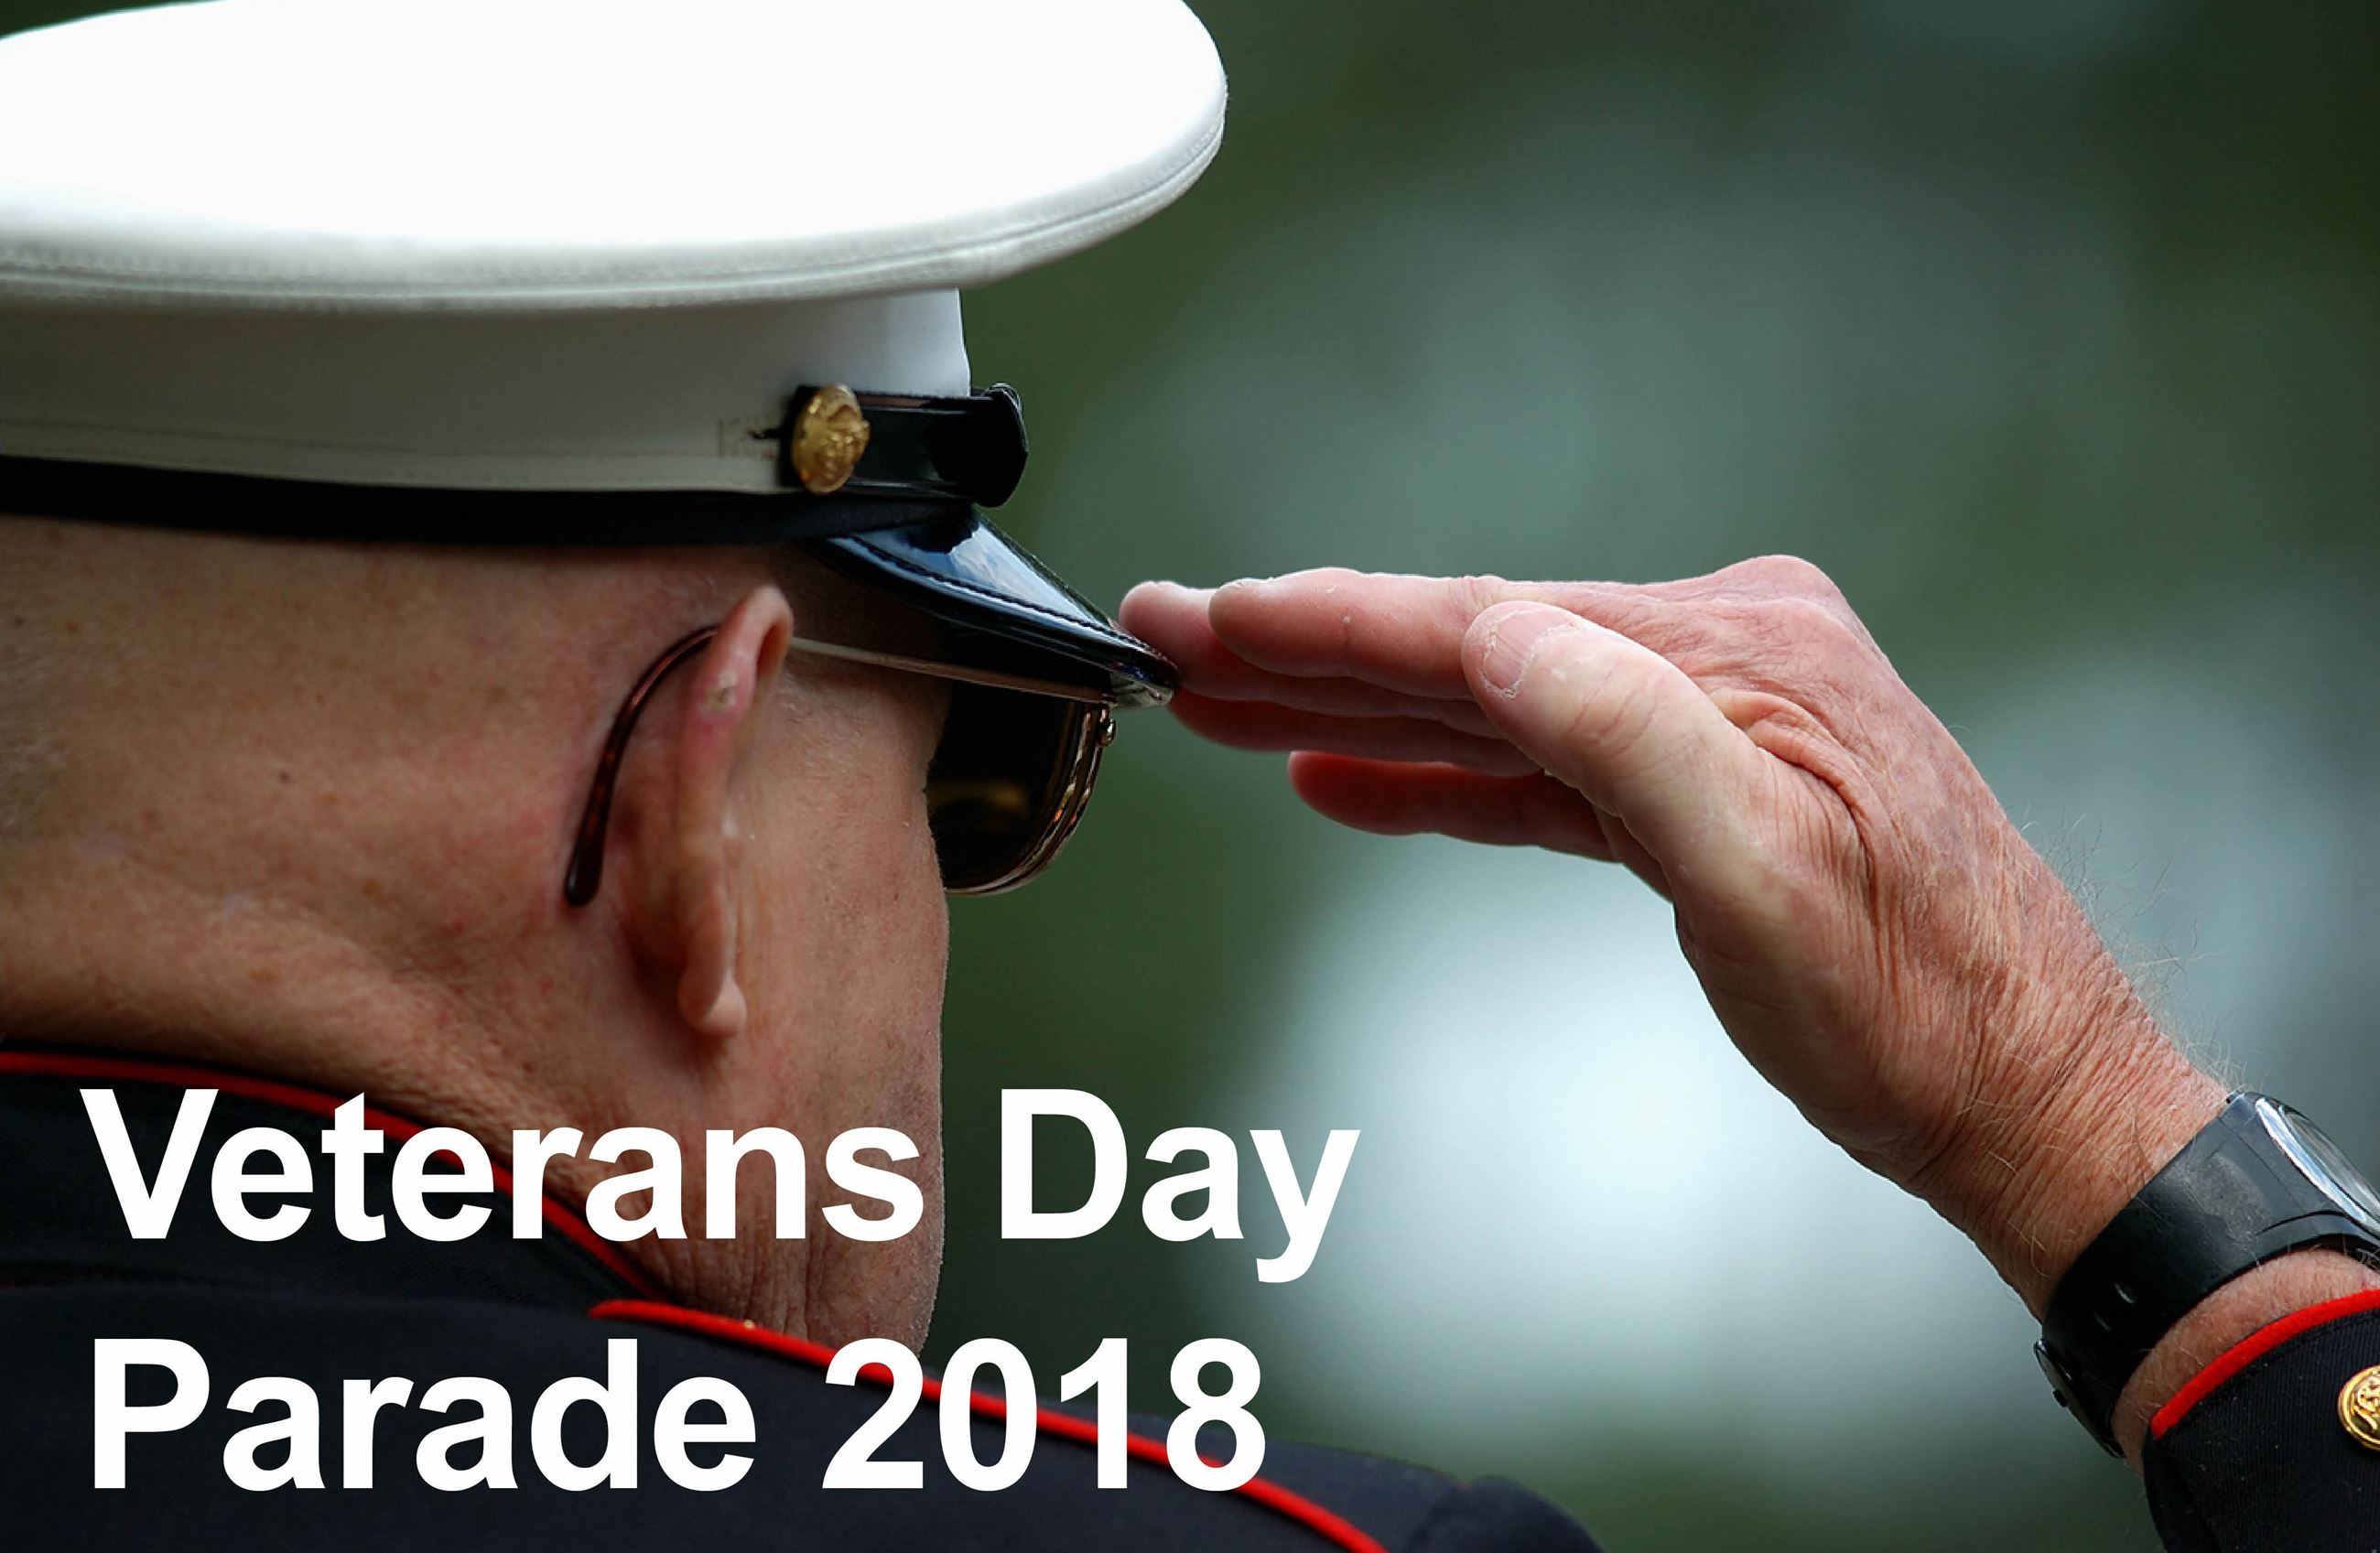 Veterans Day Parade Event Image